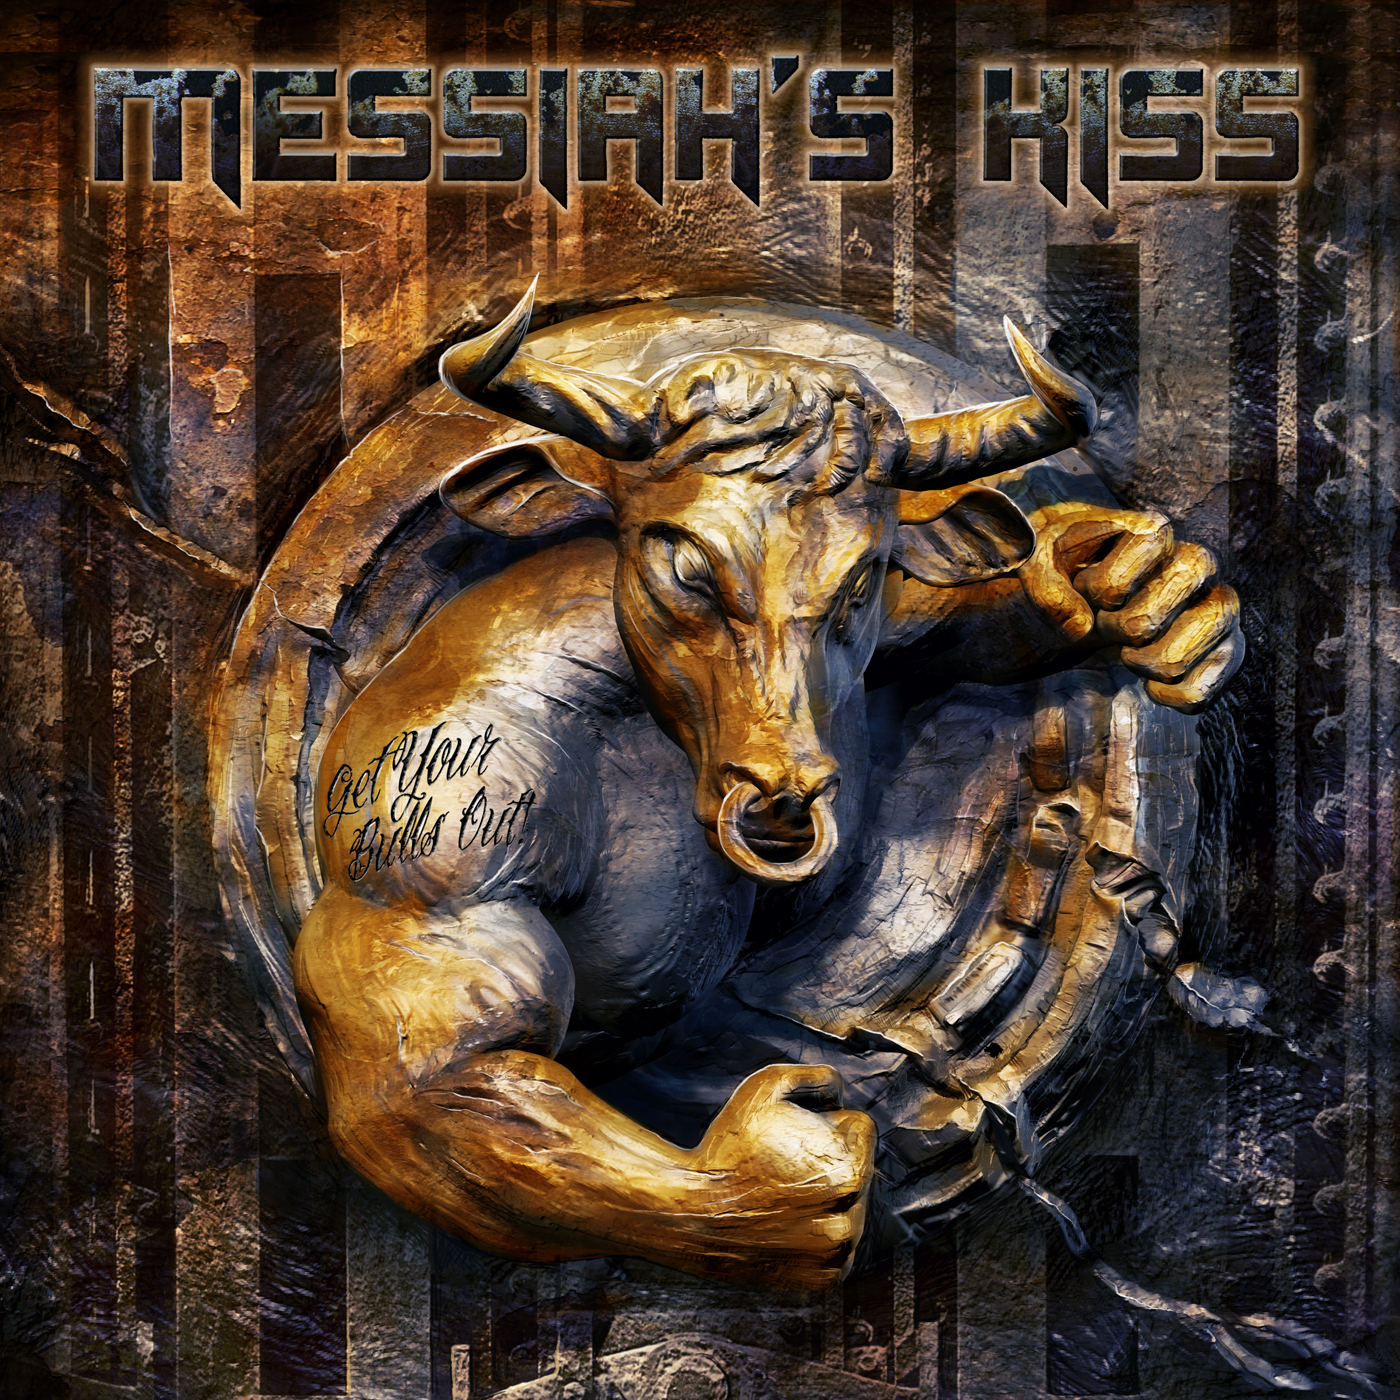 Messiahs_Kiss-Get_your_bulls_out-coverok2